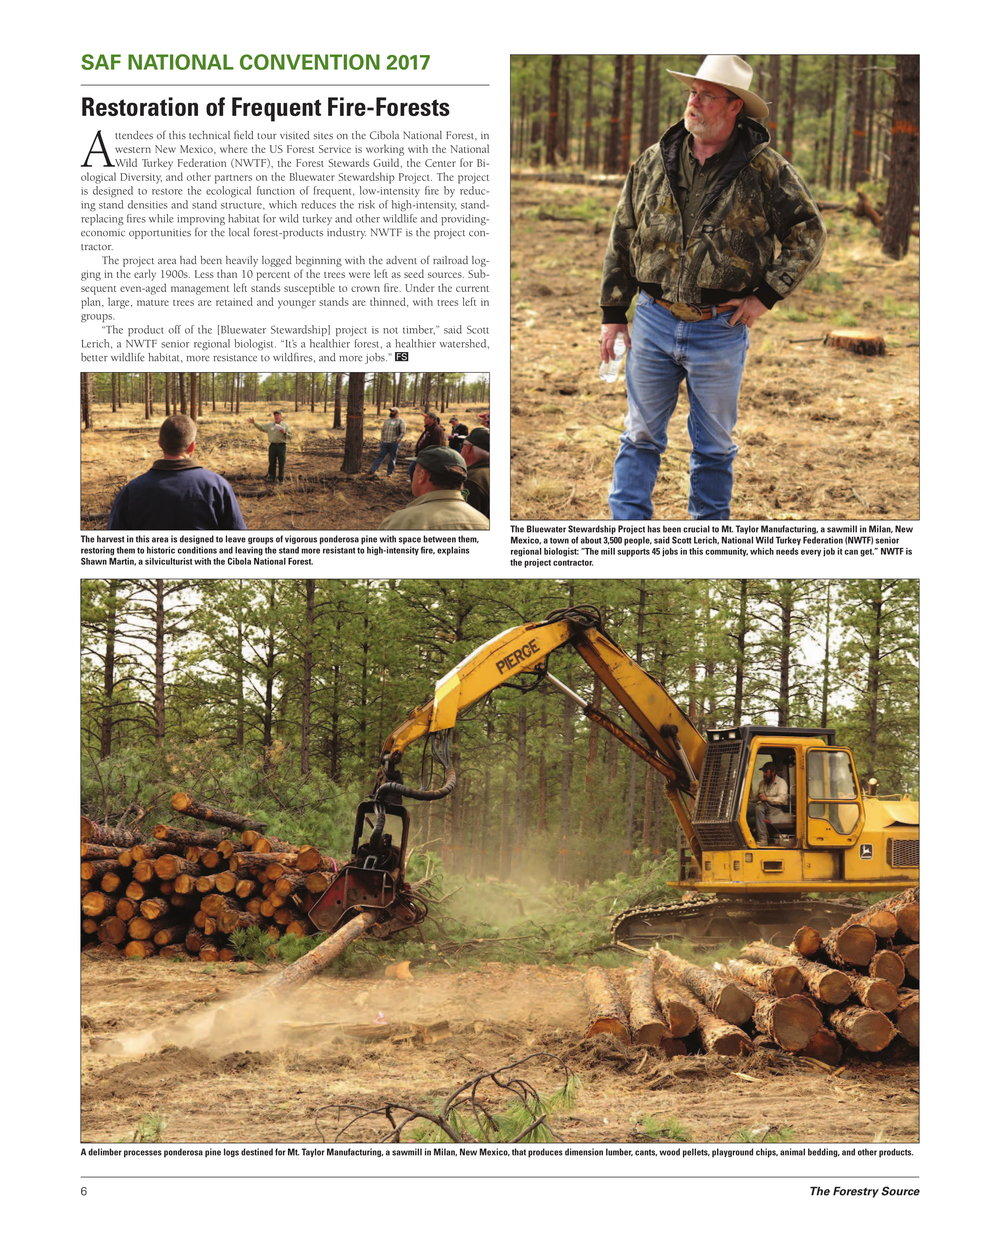 Zuni CFLR SAF Article Jan 2018Forestry Source January 2018 - Medium Resolution-1.jpg